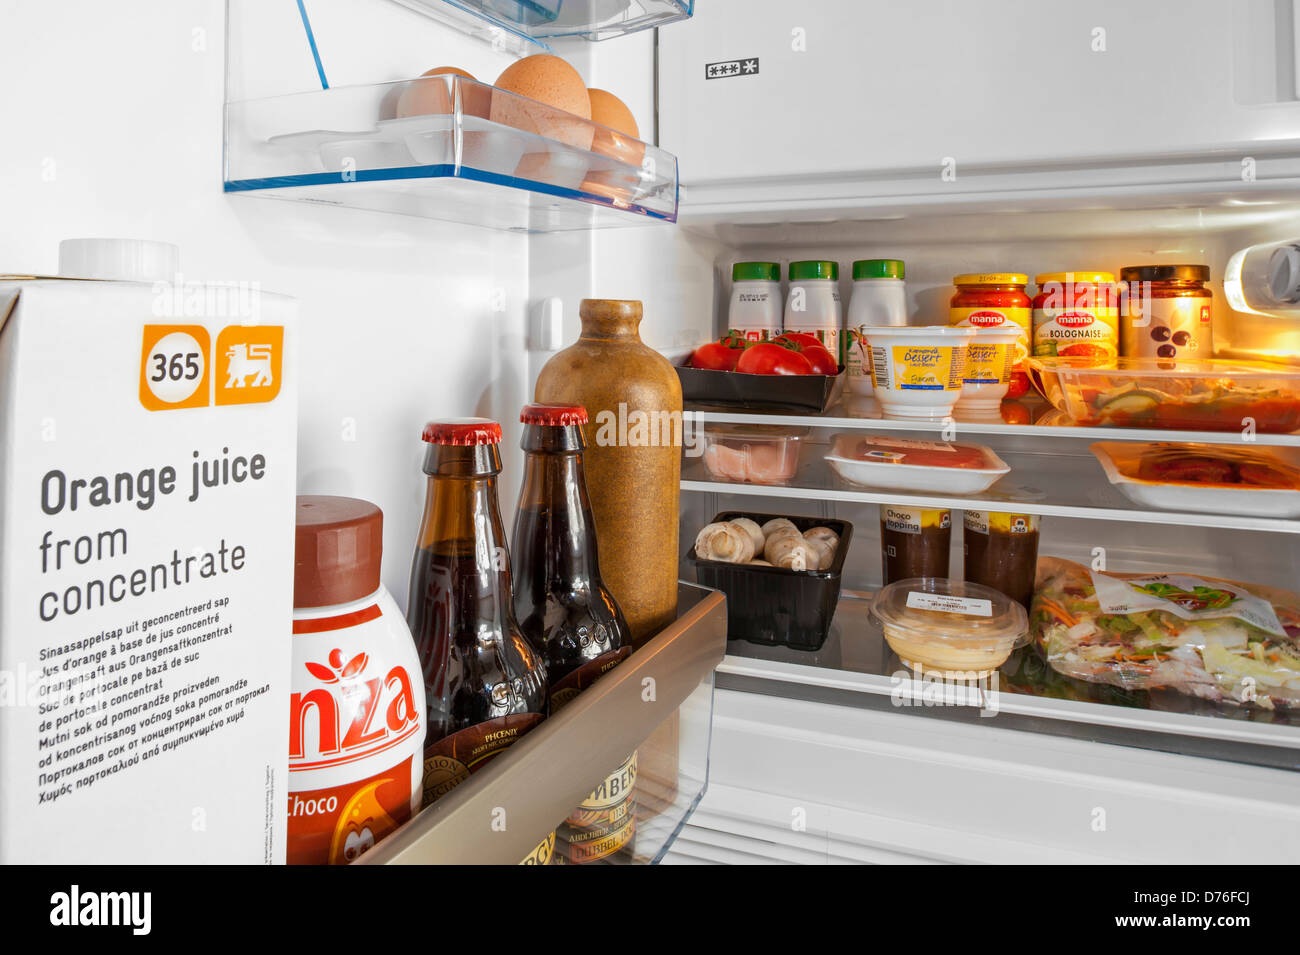 Cooled food and beverages in open fridge / refrigerator in kitchen - Stock Image